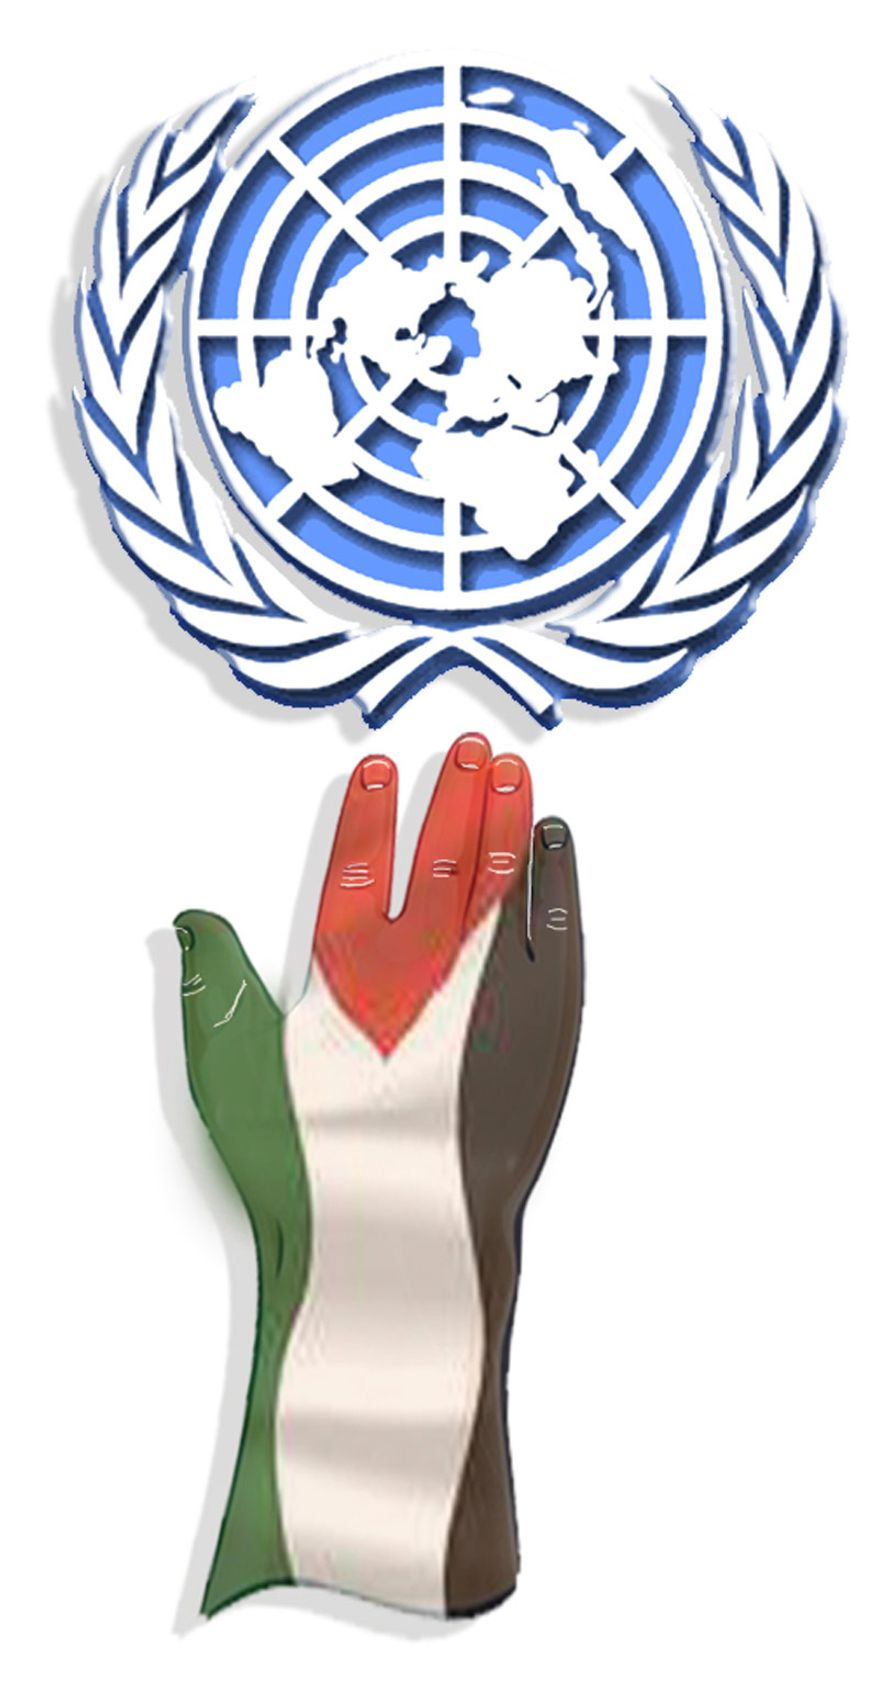 Illustration: U.N. and Palestine by John Camejo for The Washington Times